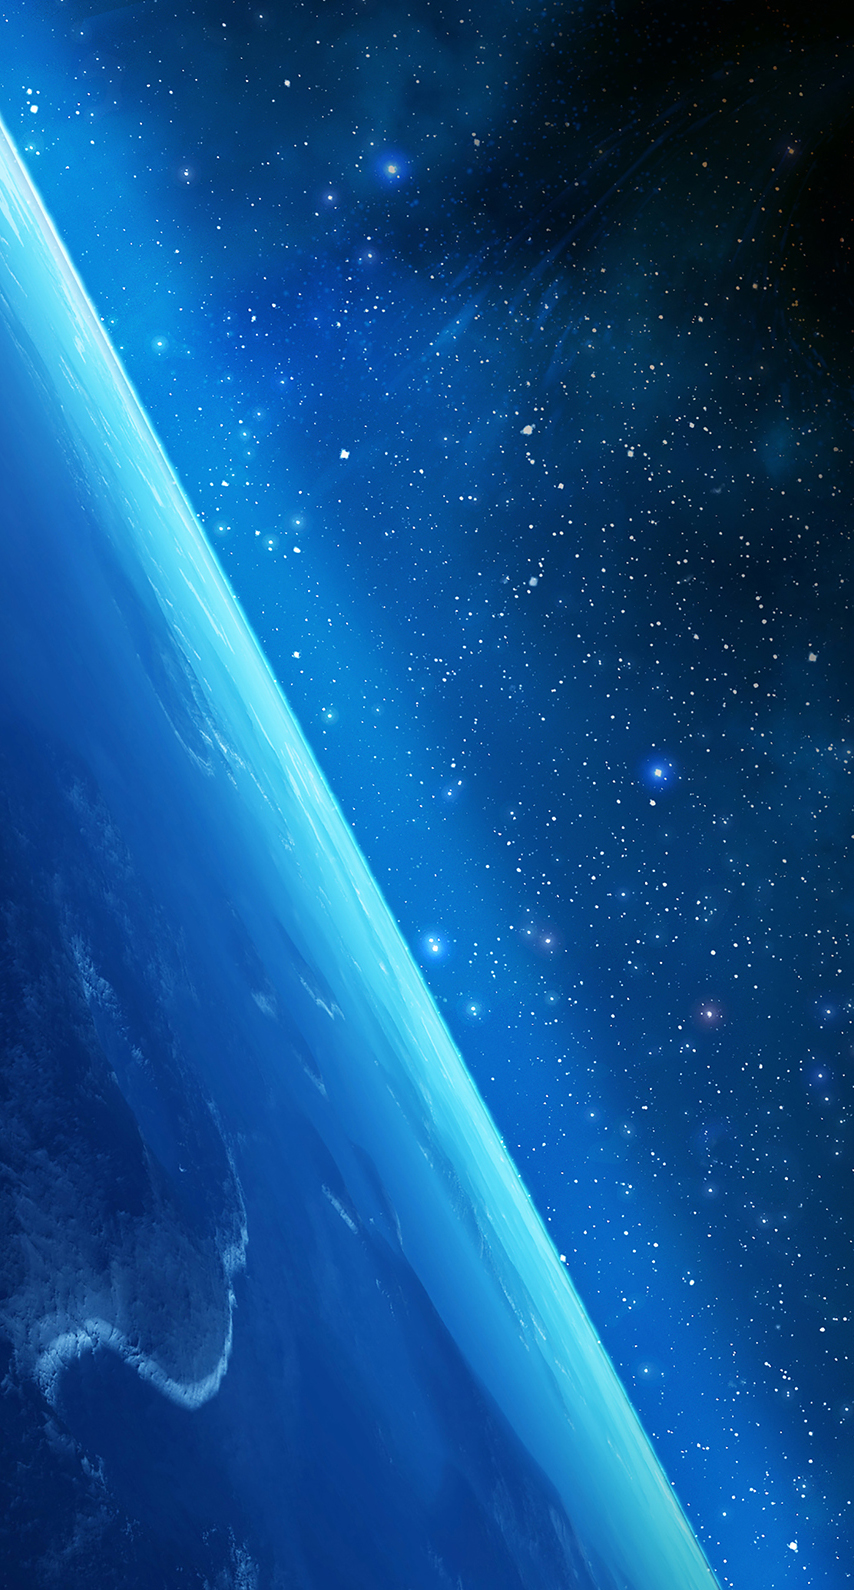 galaxy, celebration, flight, art, easter, air, sun, insubstantial, no person, science, astronomy, exploration, outdoors, underwater, deep